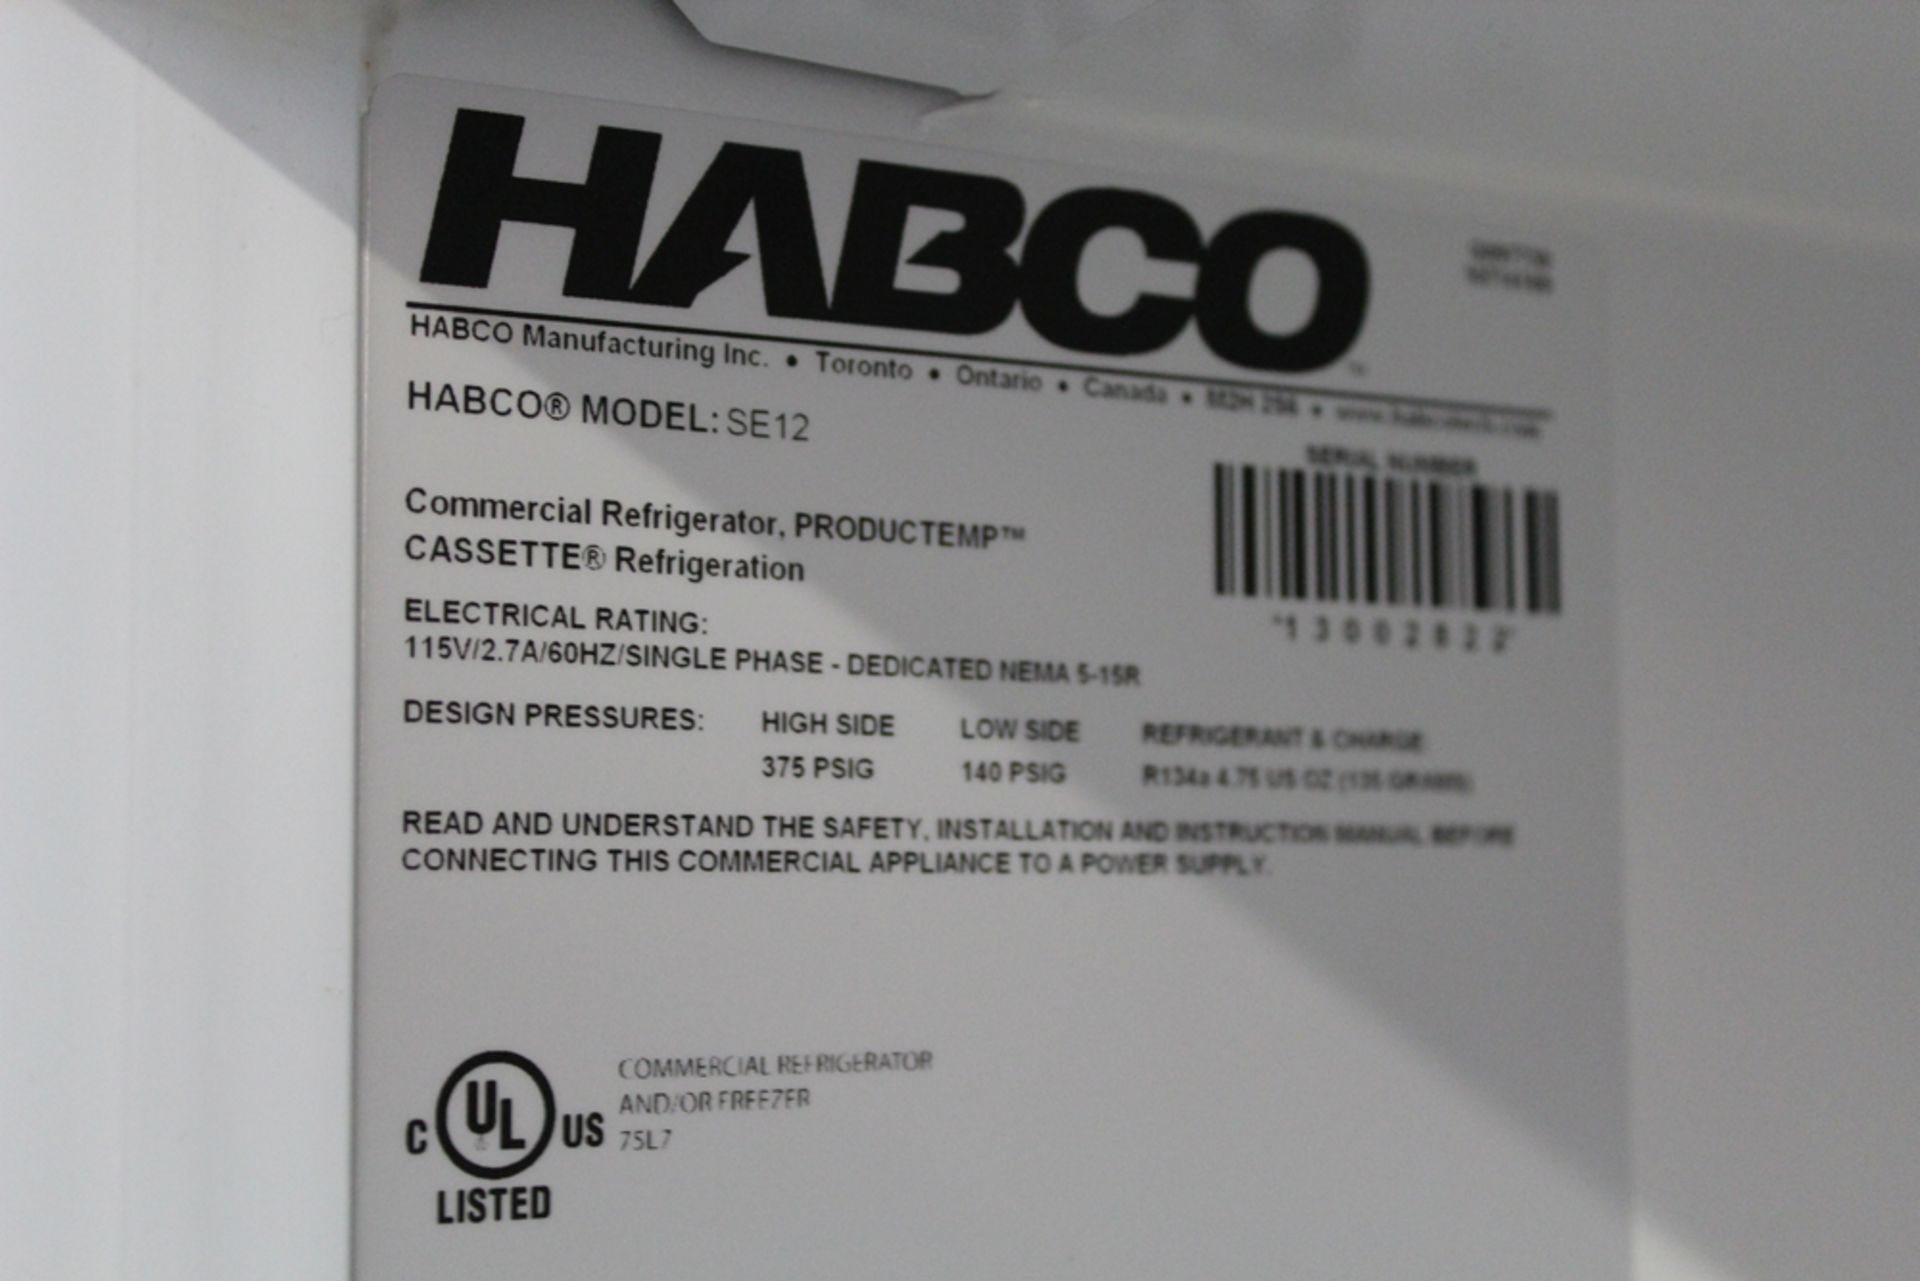 Lot 10 - Habco model SE-12 Year 2016